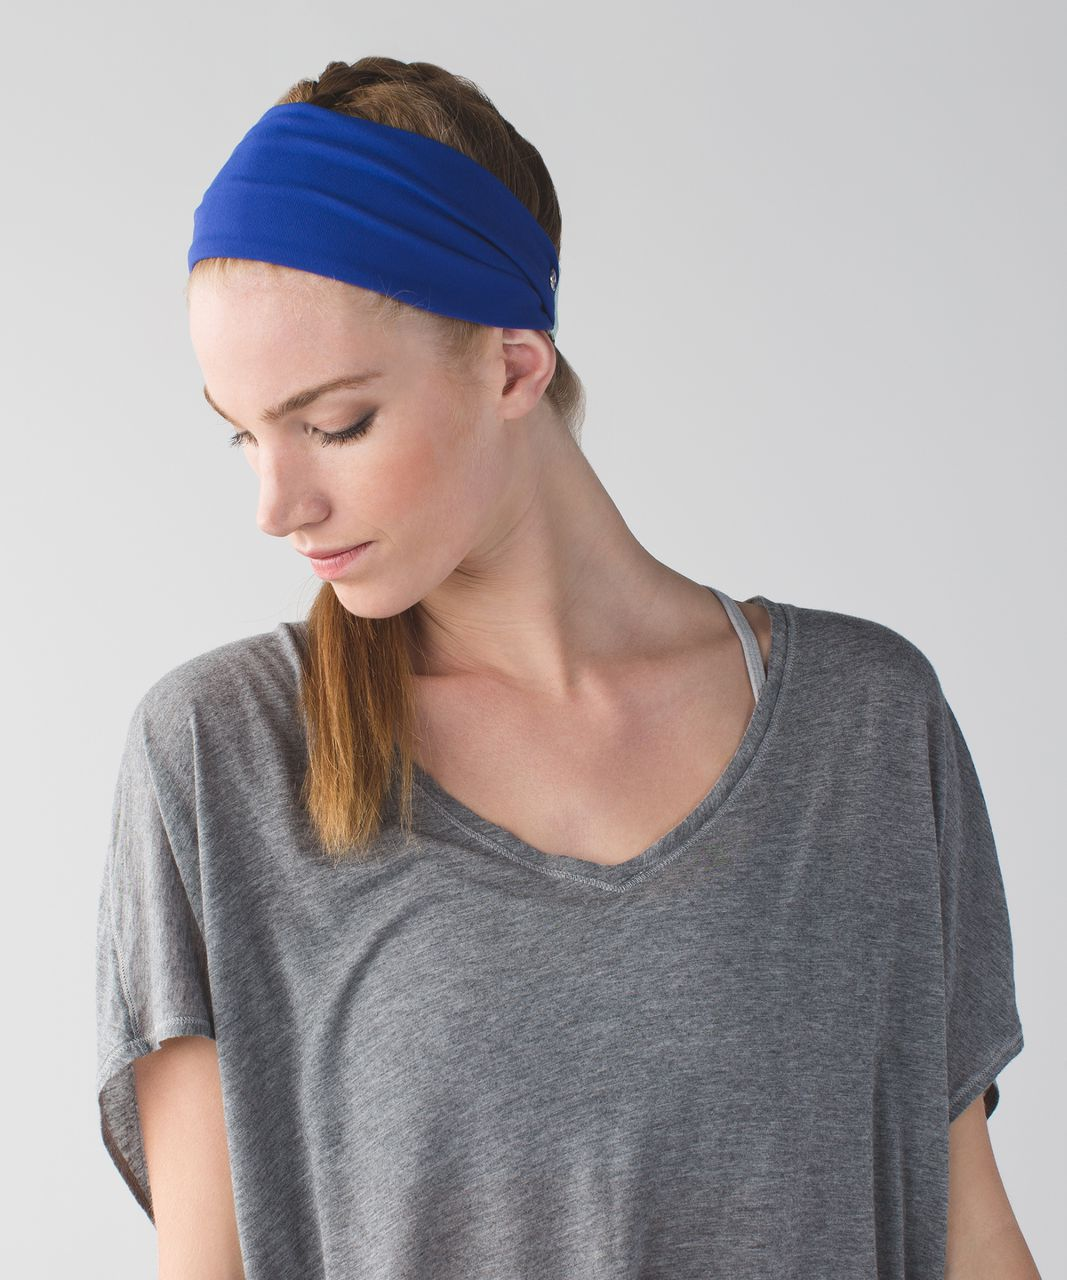 Lululemon Fringe Fighter Headband - Sapphire Blue / Heathered Sea Mist